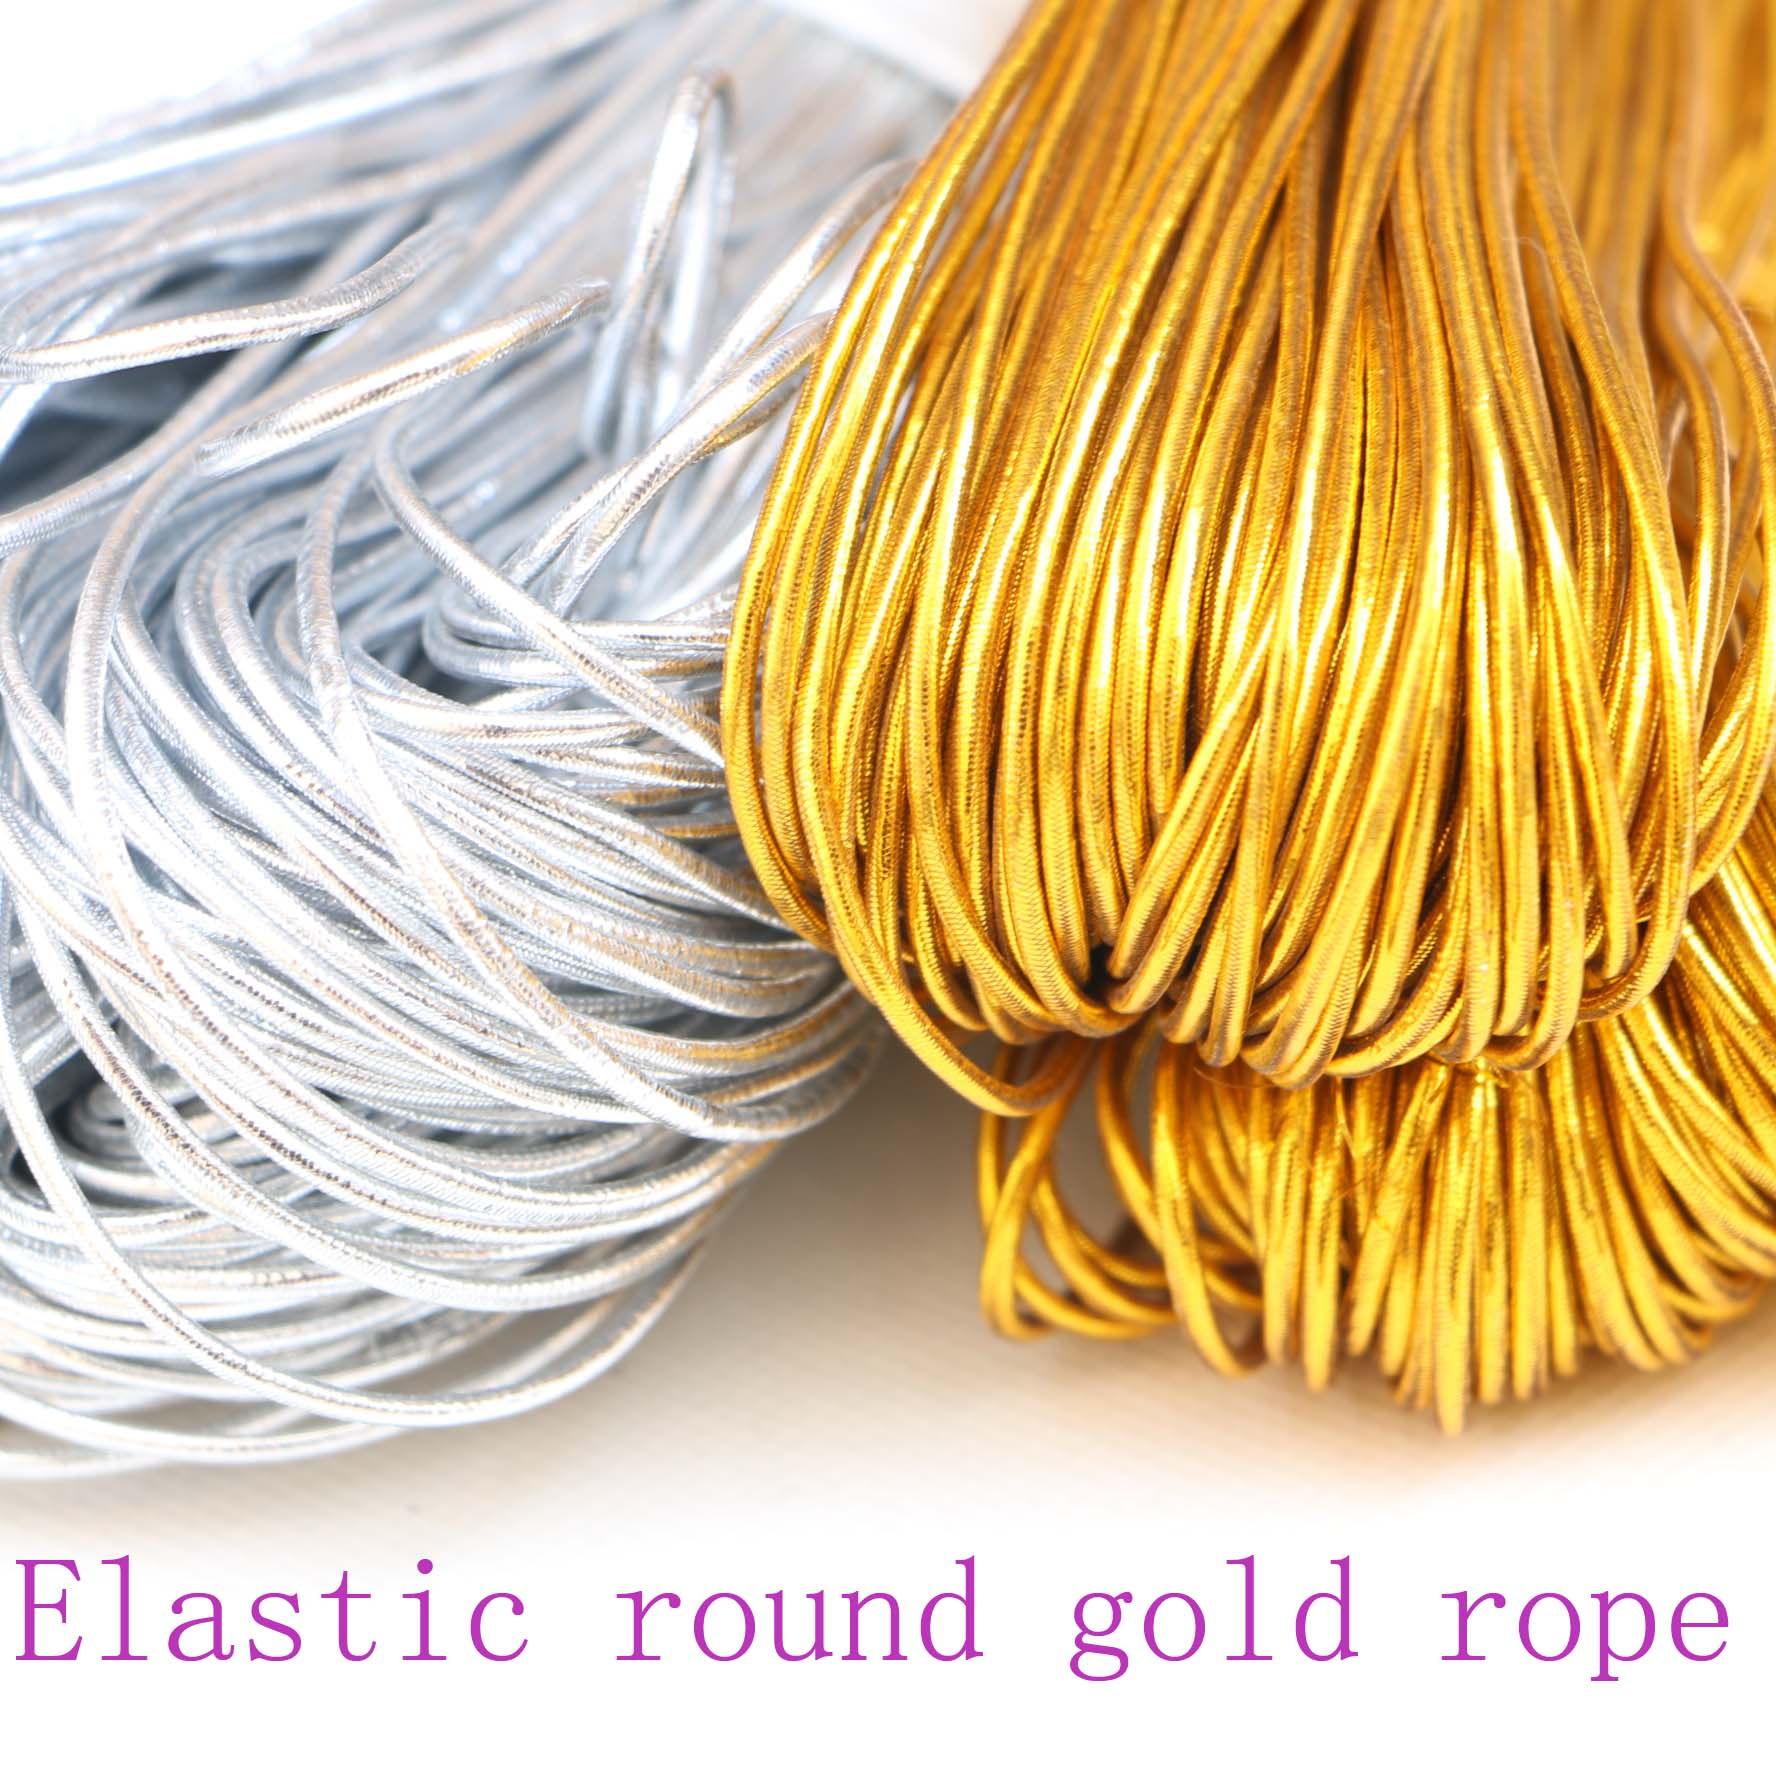 HIGHEST QUALITY AMBERCORE HOLLOW NANO BORE POLE ELASTIC RATED 4-8  2.5m length